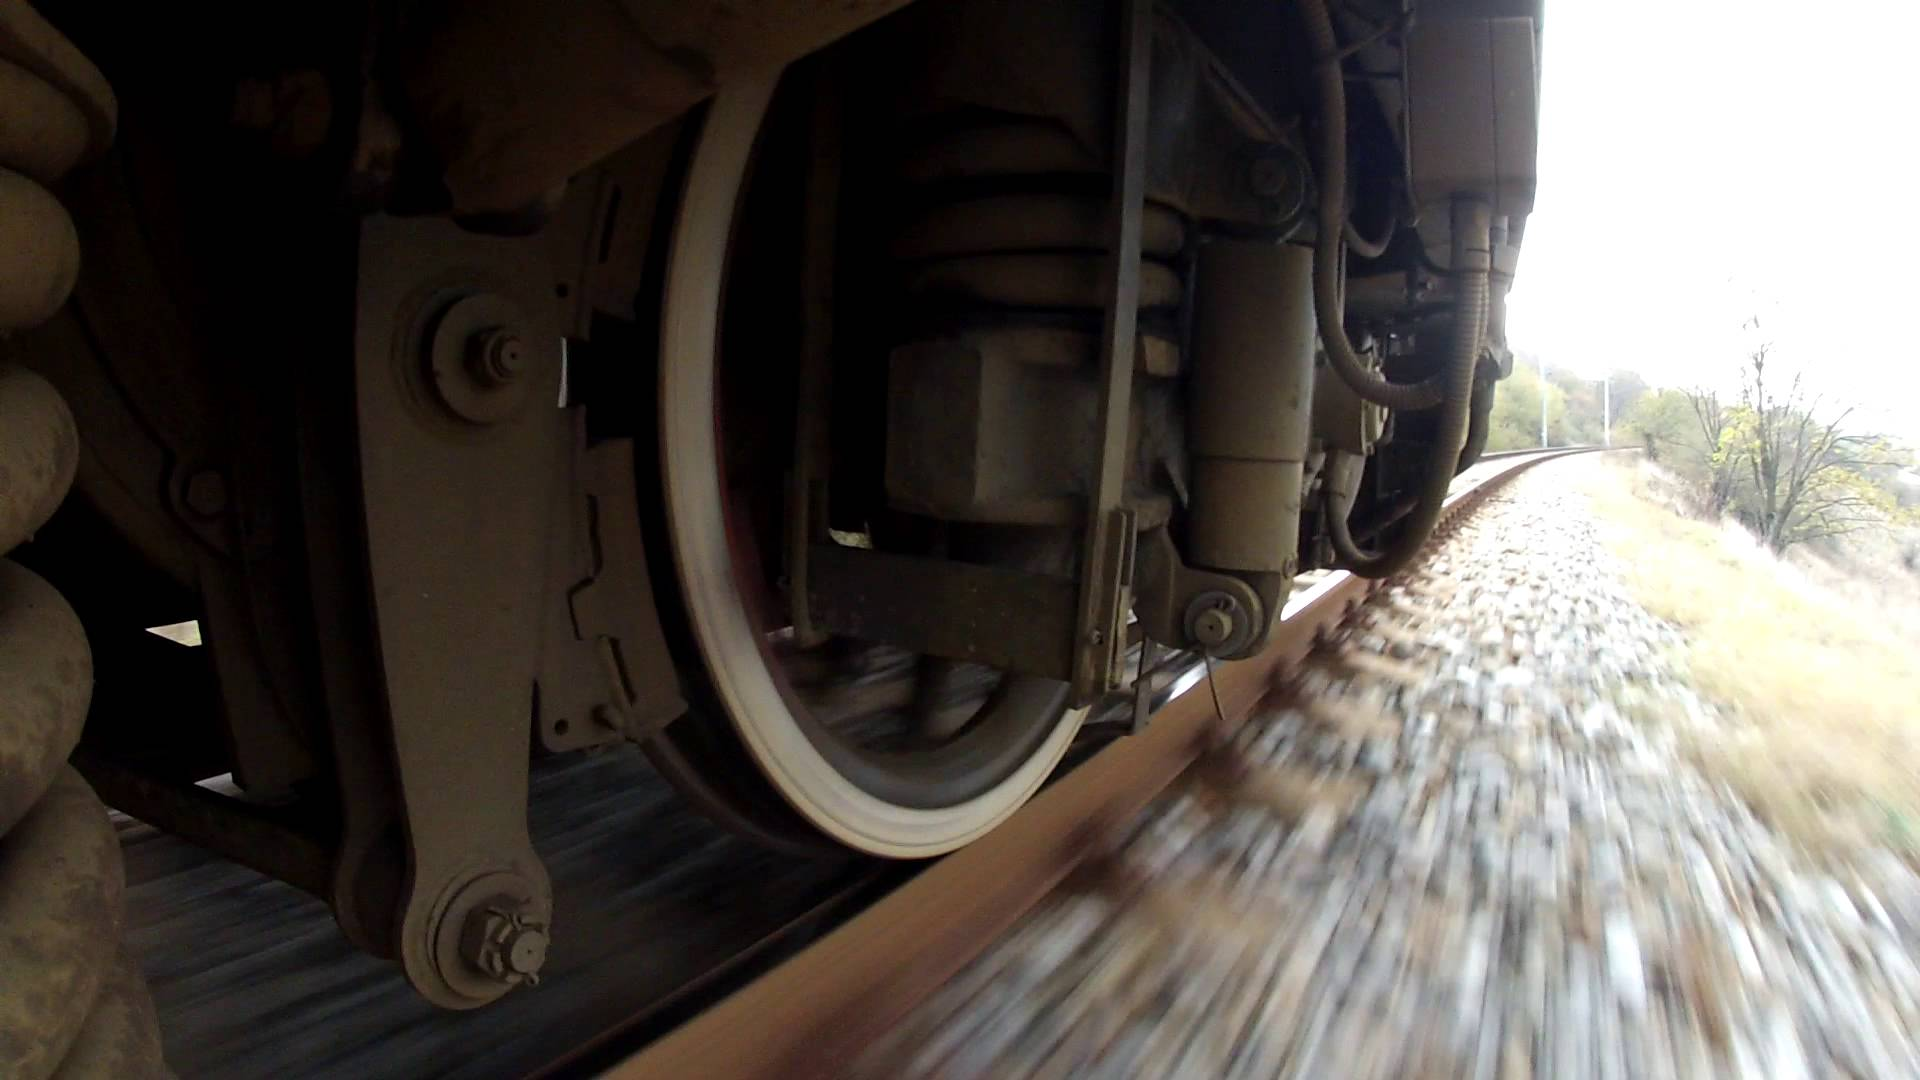 A train wheel running on a jointed track - YouTube